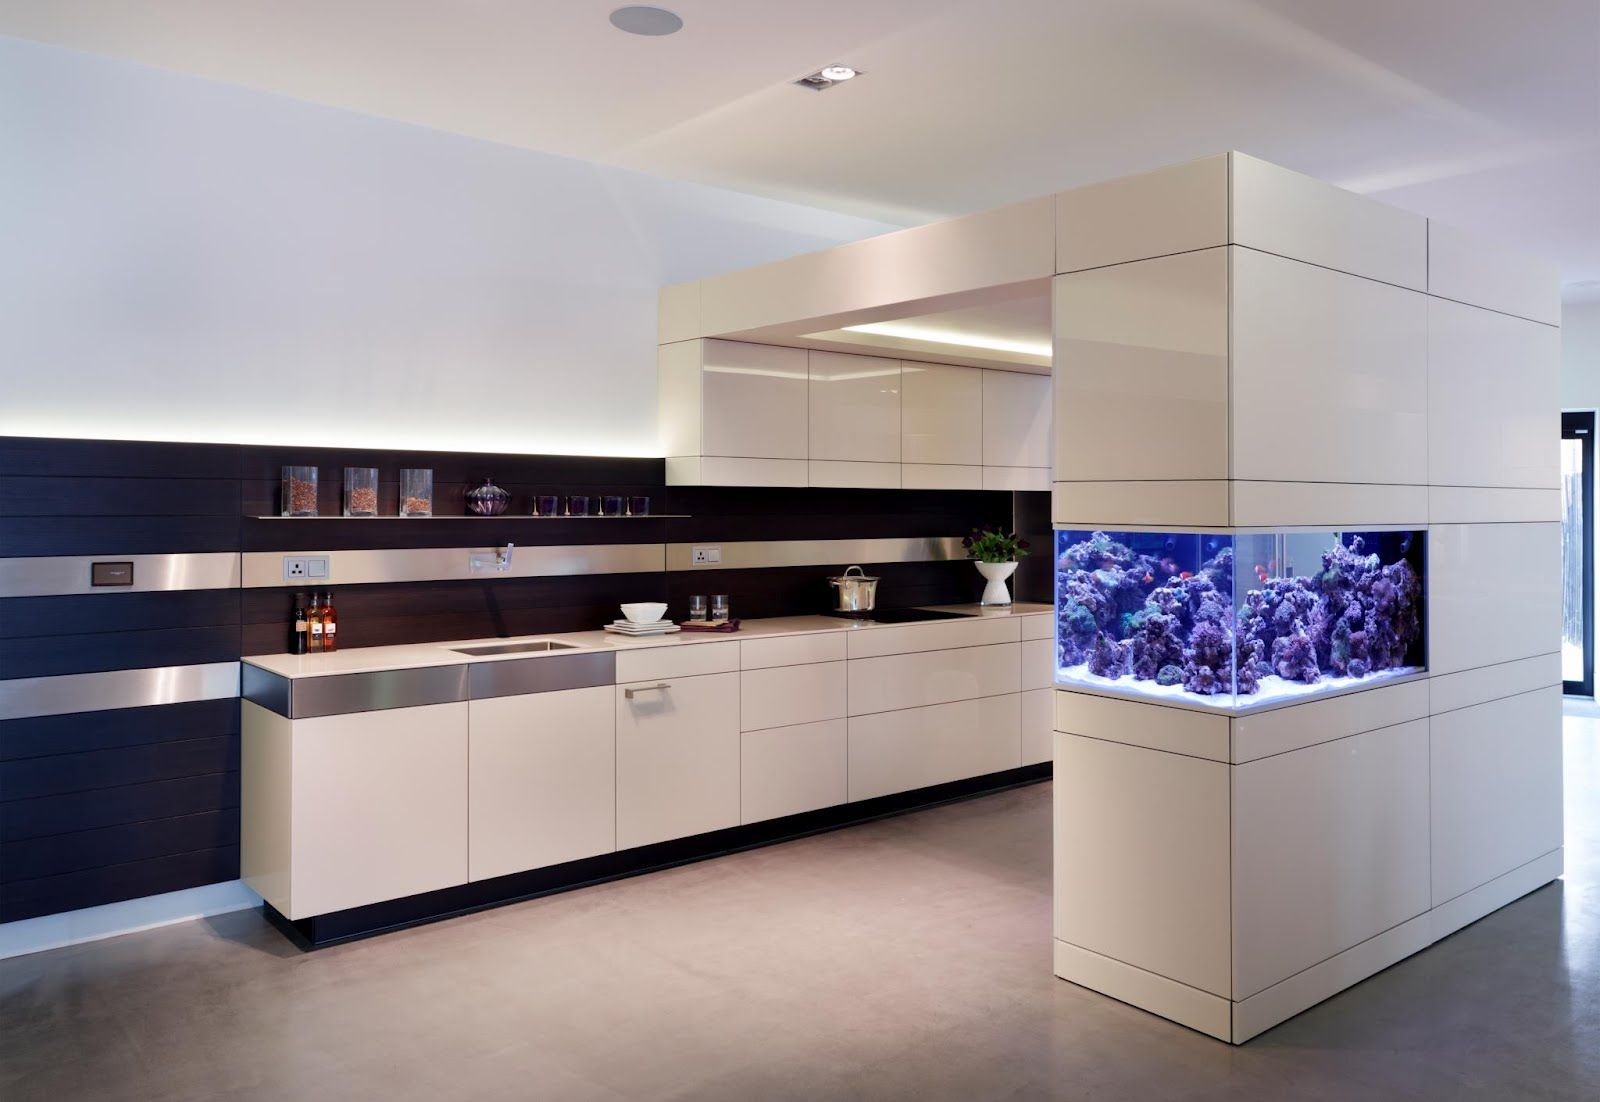 Aquafront Was Commissioned Last April To Design Integrated Aquariums For  Luxury Kitchen Designer Poggenpohl. One Of The Results Of This Partnership  Is This ...